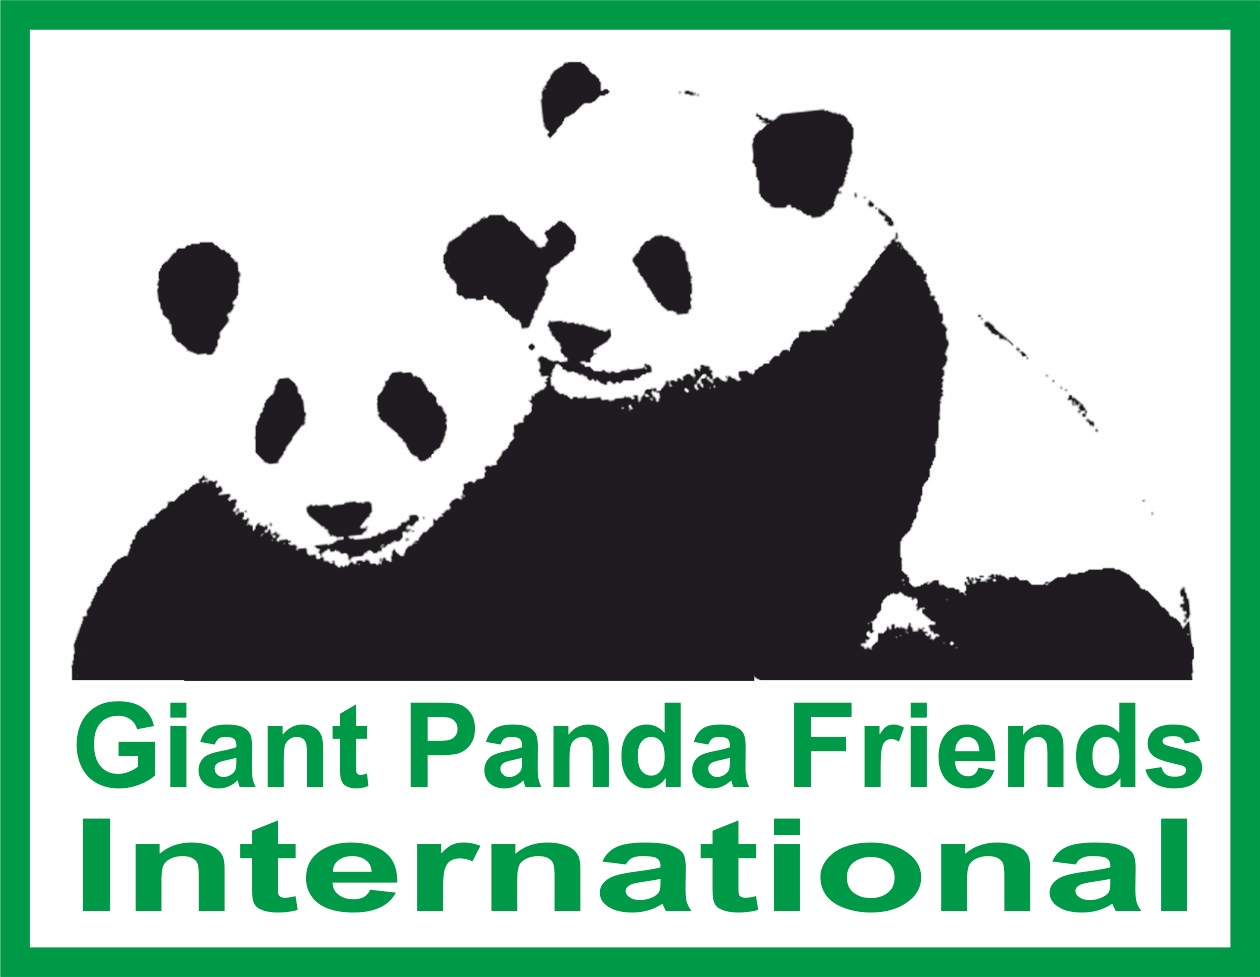 Giant Panda Friends International